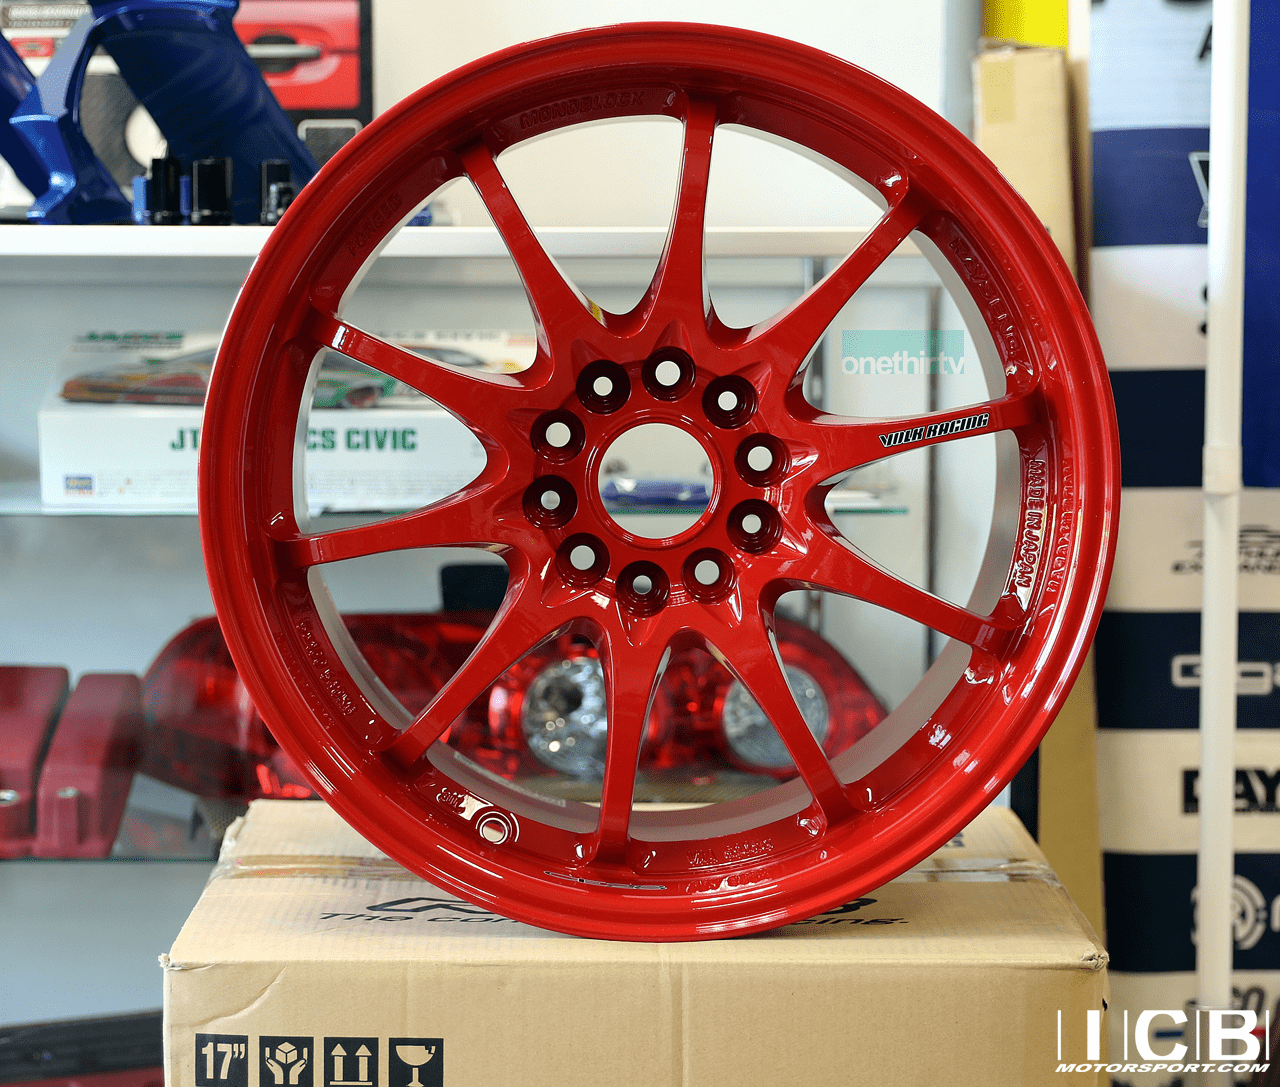 Rays Volk Racing CE28N Red Wheels Set 5X114.3 17X10 +50 Offset Concave Face BBK